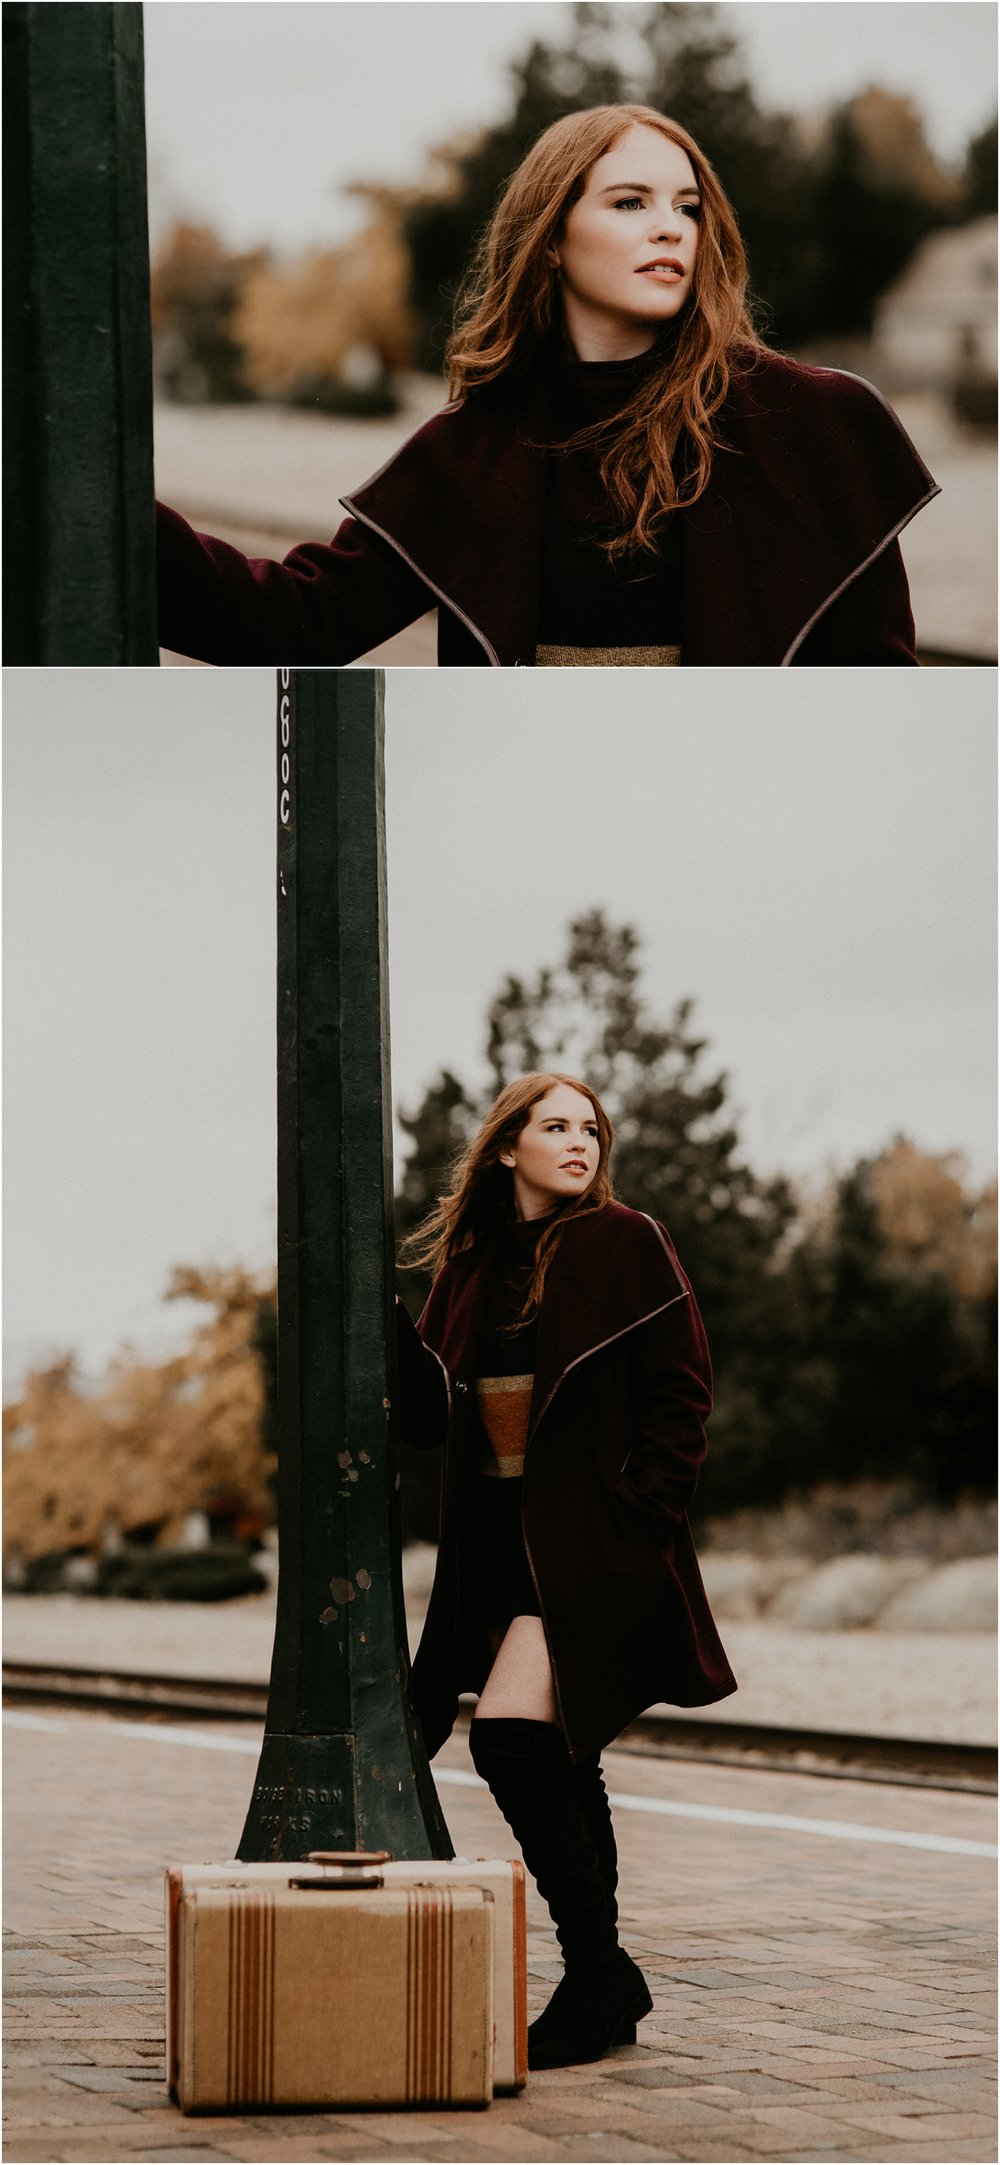 Boise Senior Photographer Makayla Madden Photography Eagle High Senior Harlee Edwards Red Head Fall Downtown Boise Senior Pics Idaho Train Depot Travel Lover Meridian Senior Photographer